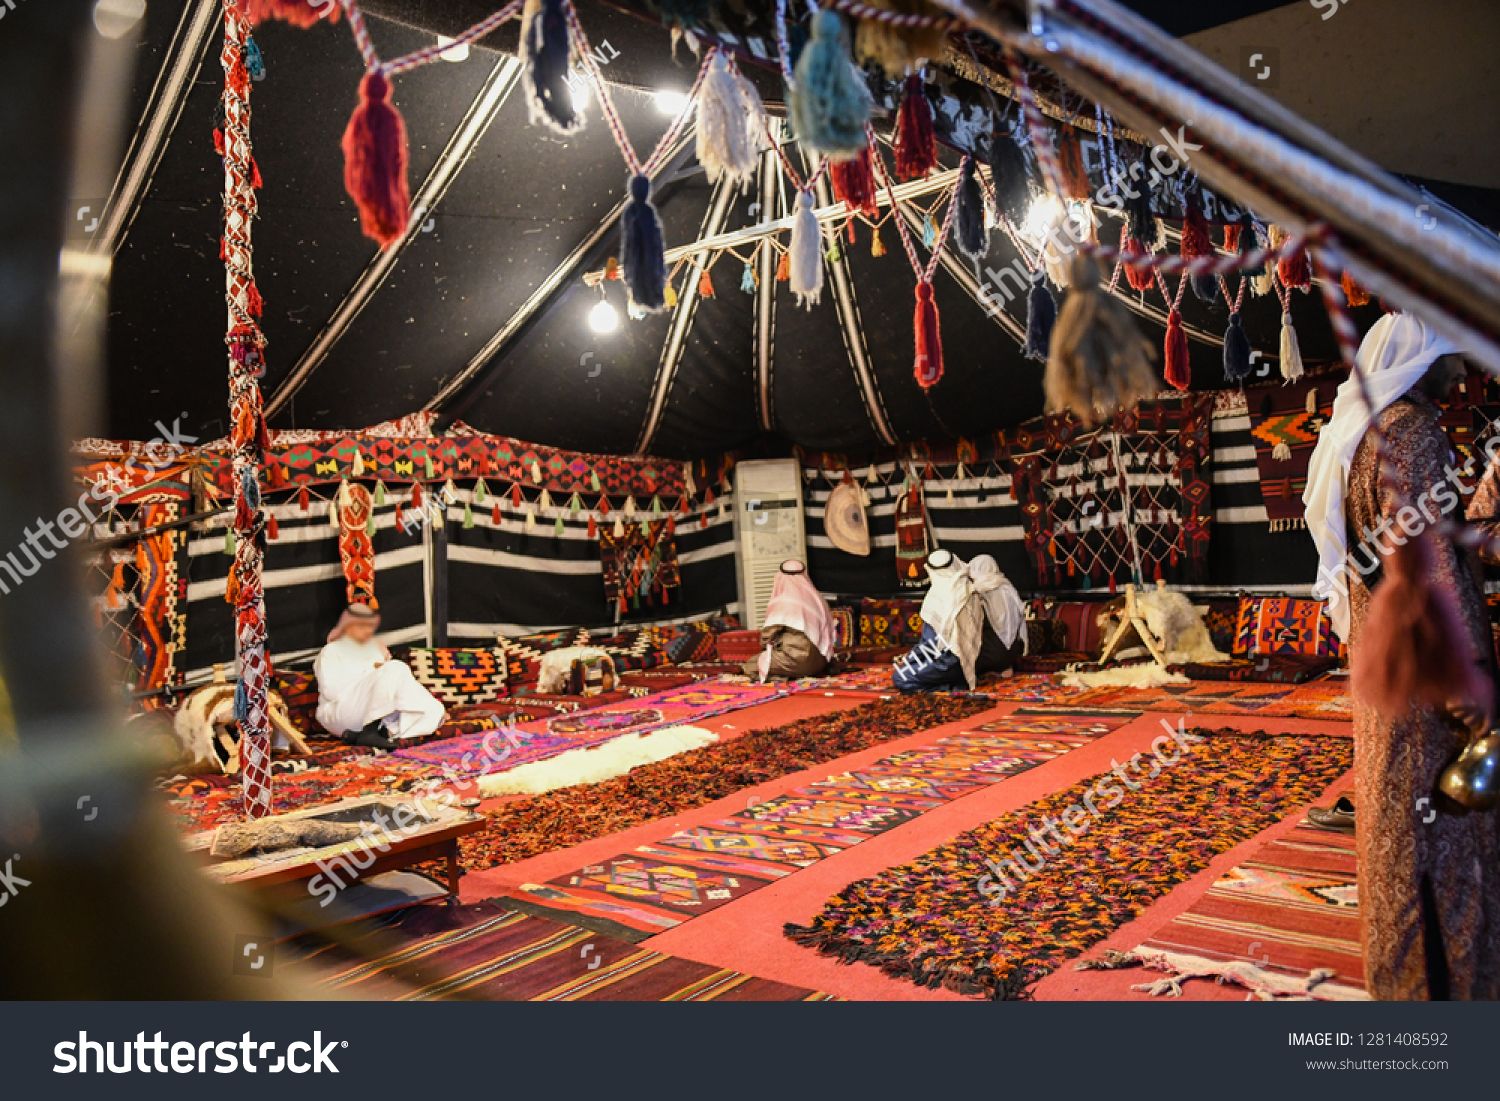 The traditional Bedouin Tent in Saudi Arabia with Arabian people wear traditional clothes